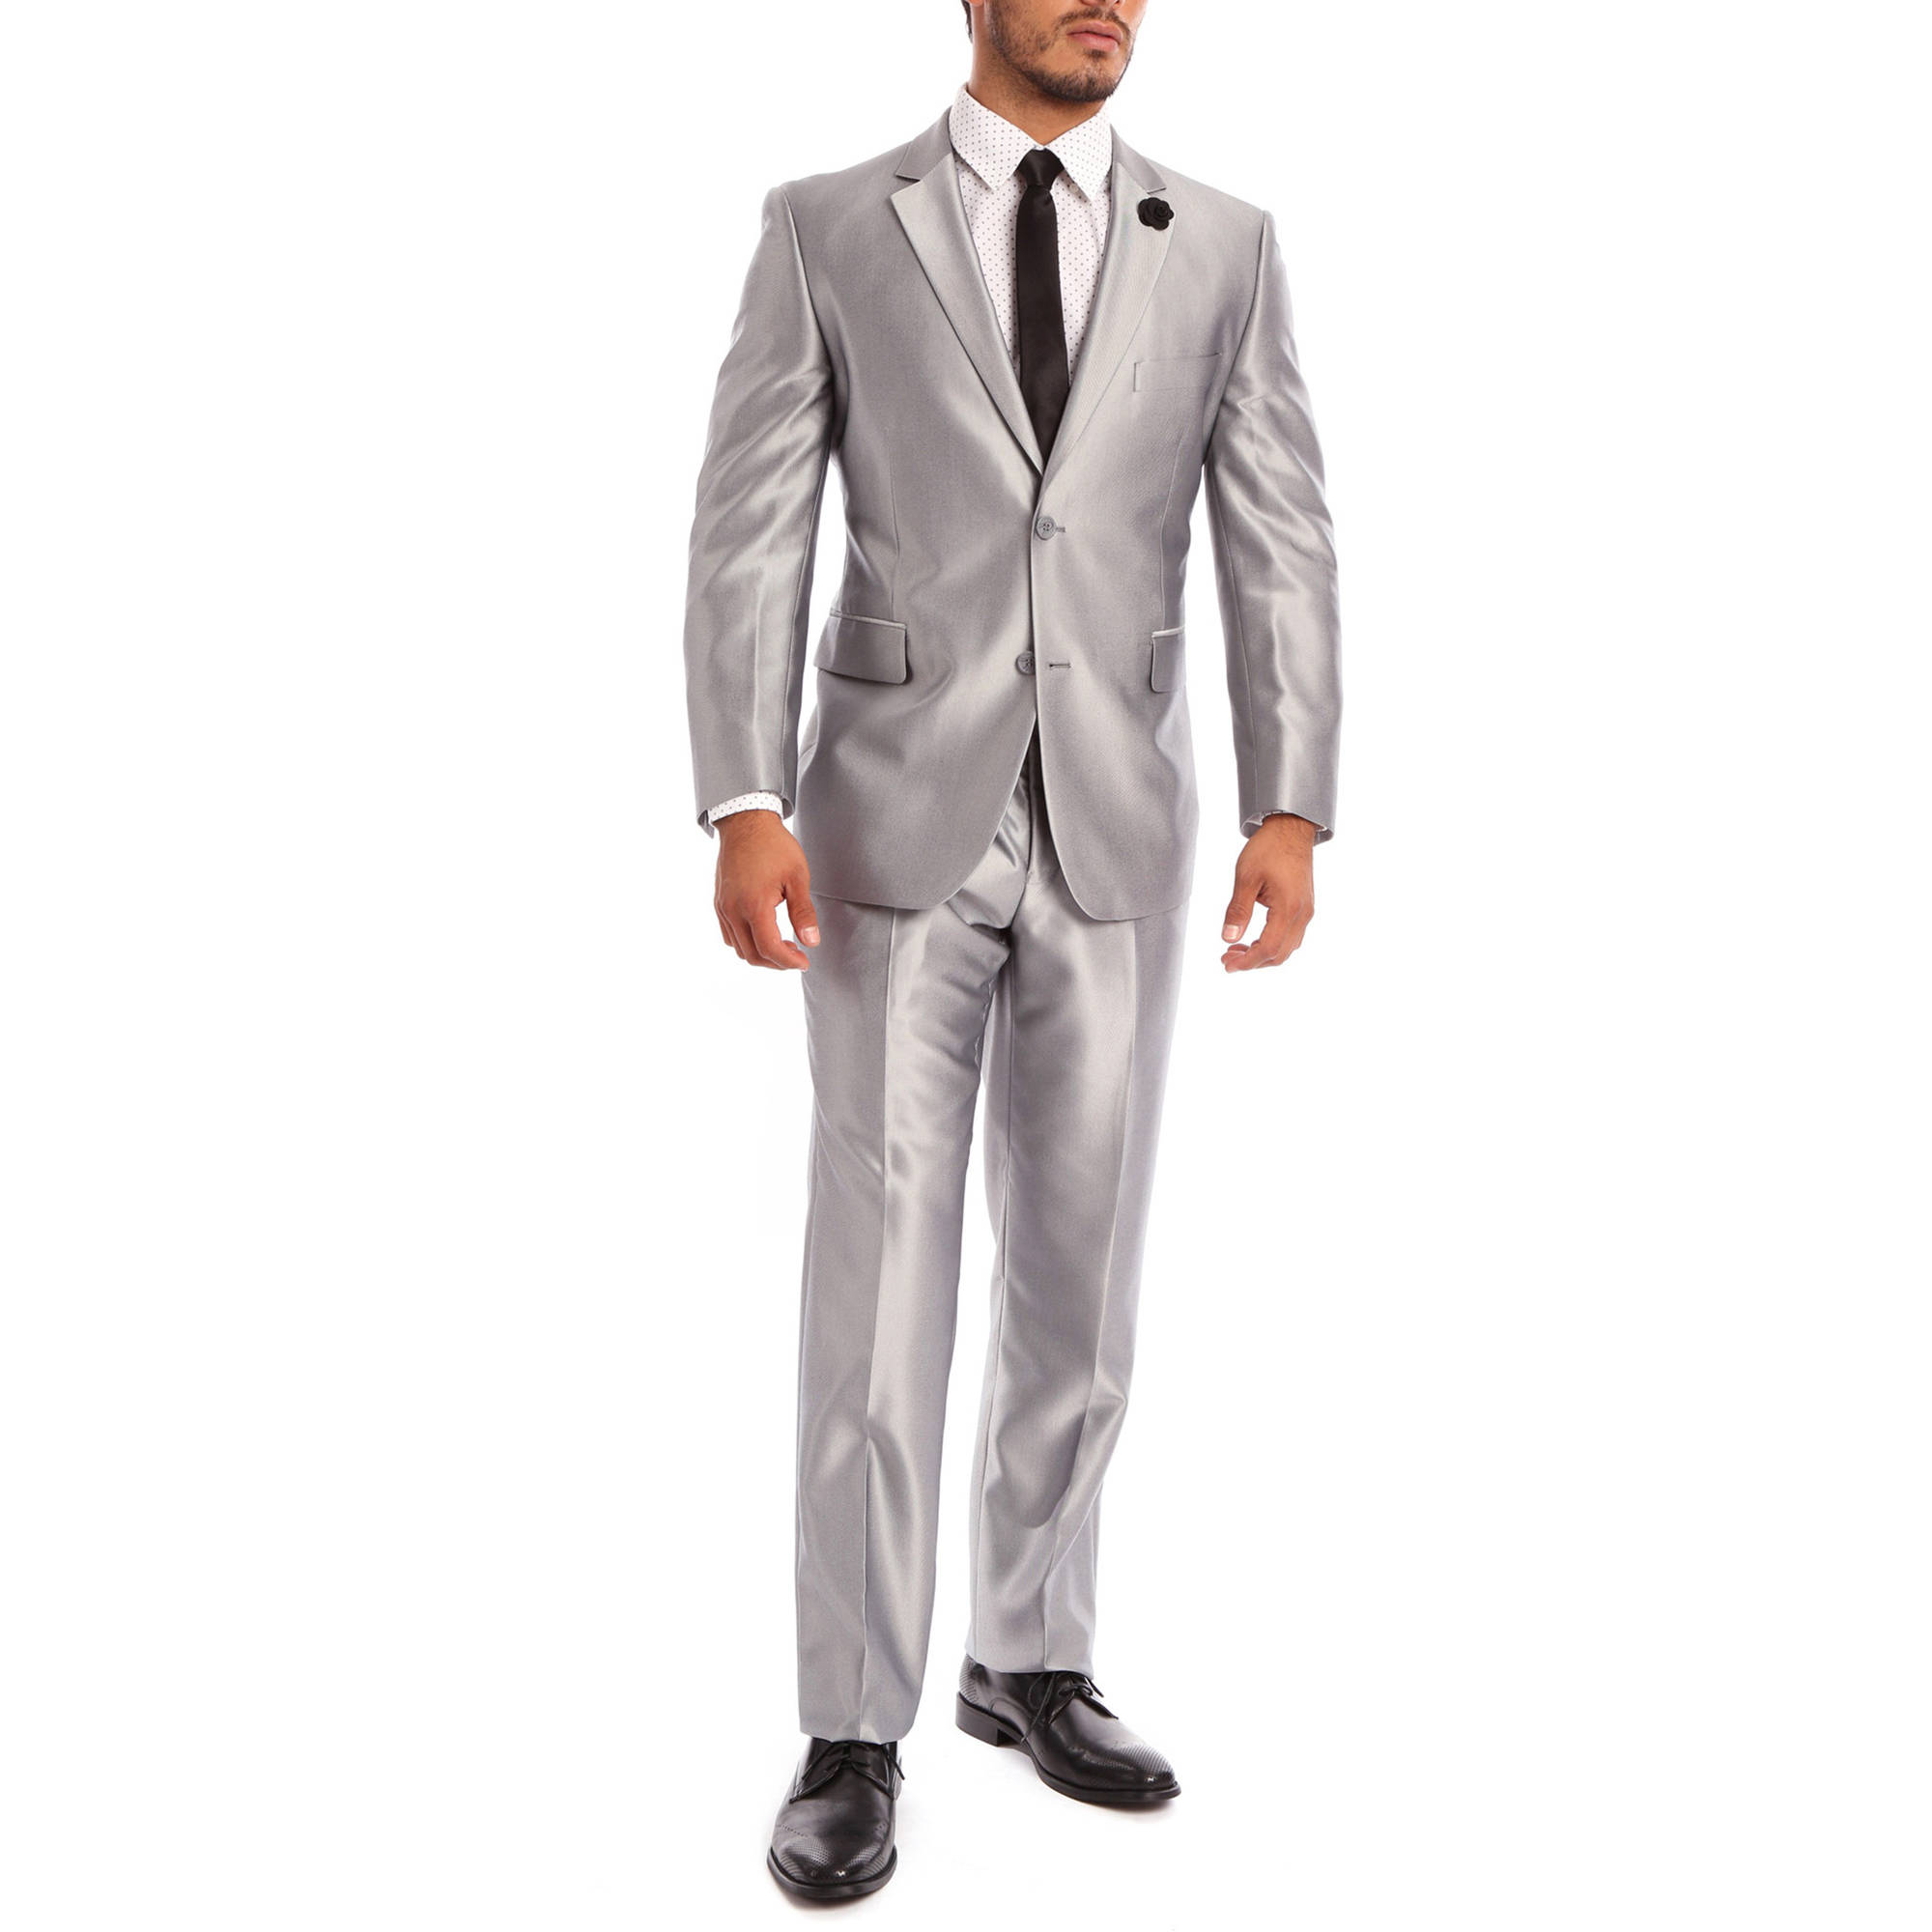 Verno Cavallo Big Men's Silver Shark-skin Classic Fit Italian Styled Two Piece Suit